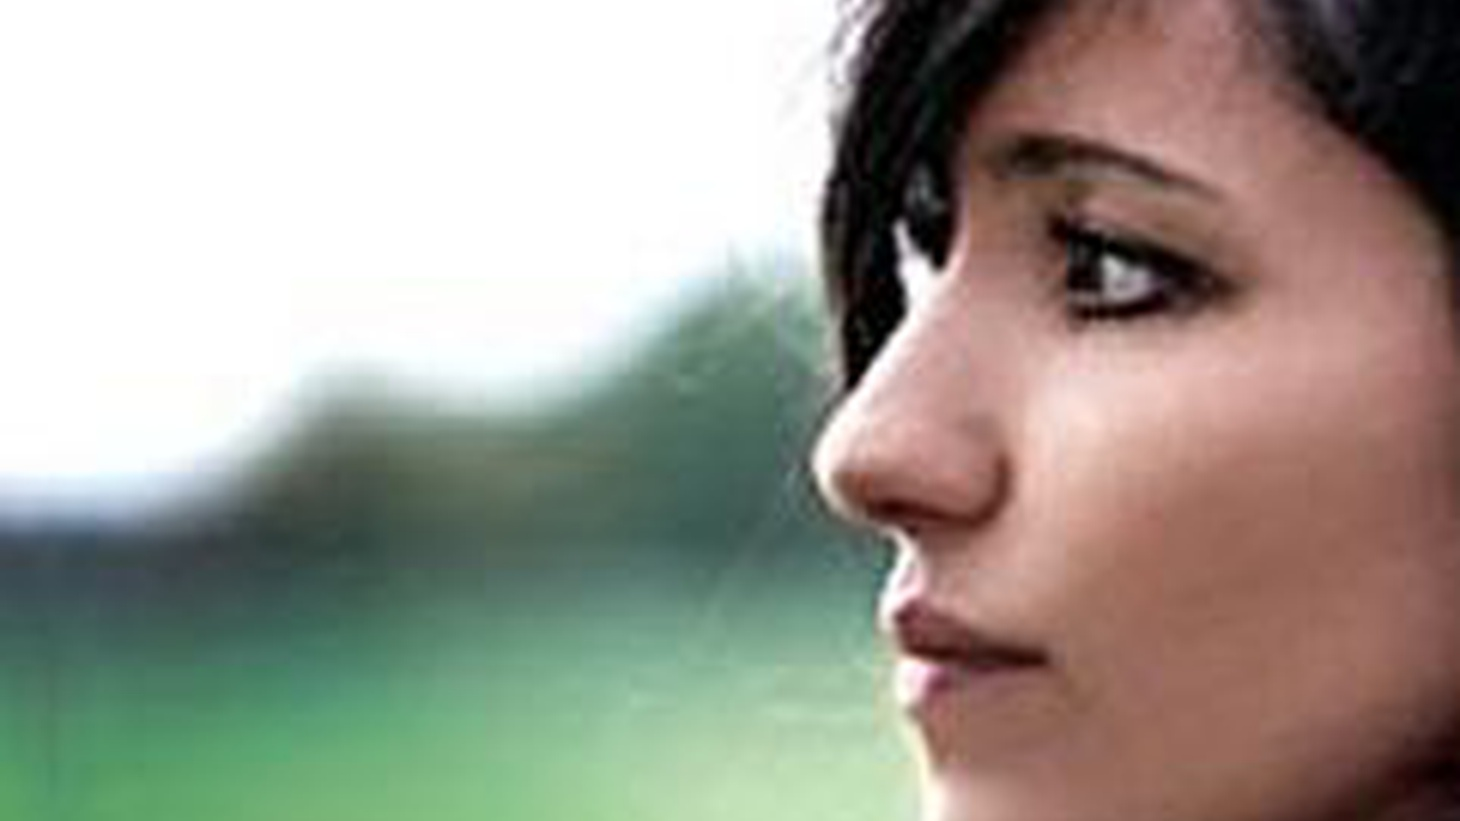 Scottish singer KT Tunstall performs solo guitar with a plethora of pedals for Morning Becomes Eclectic at 11:15am.